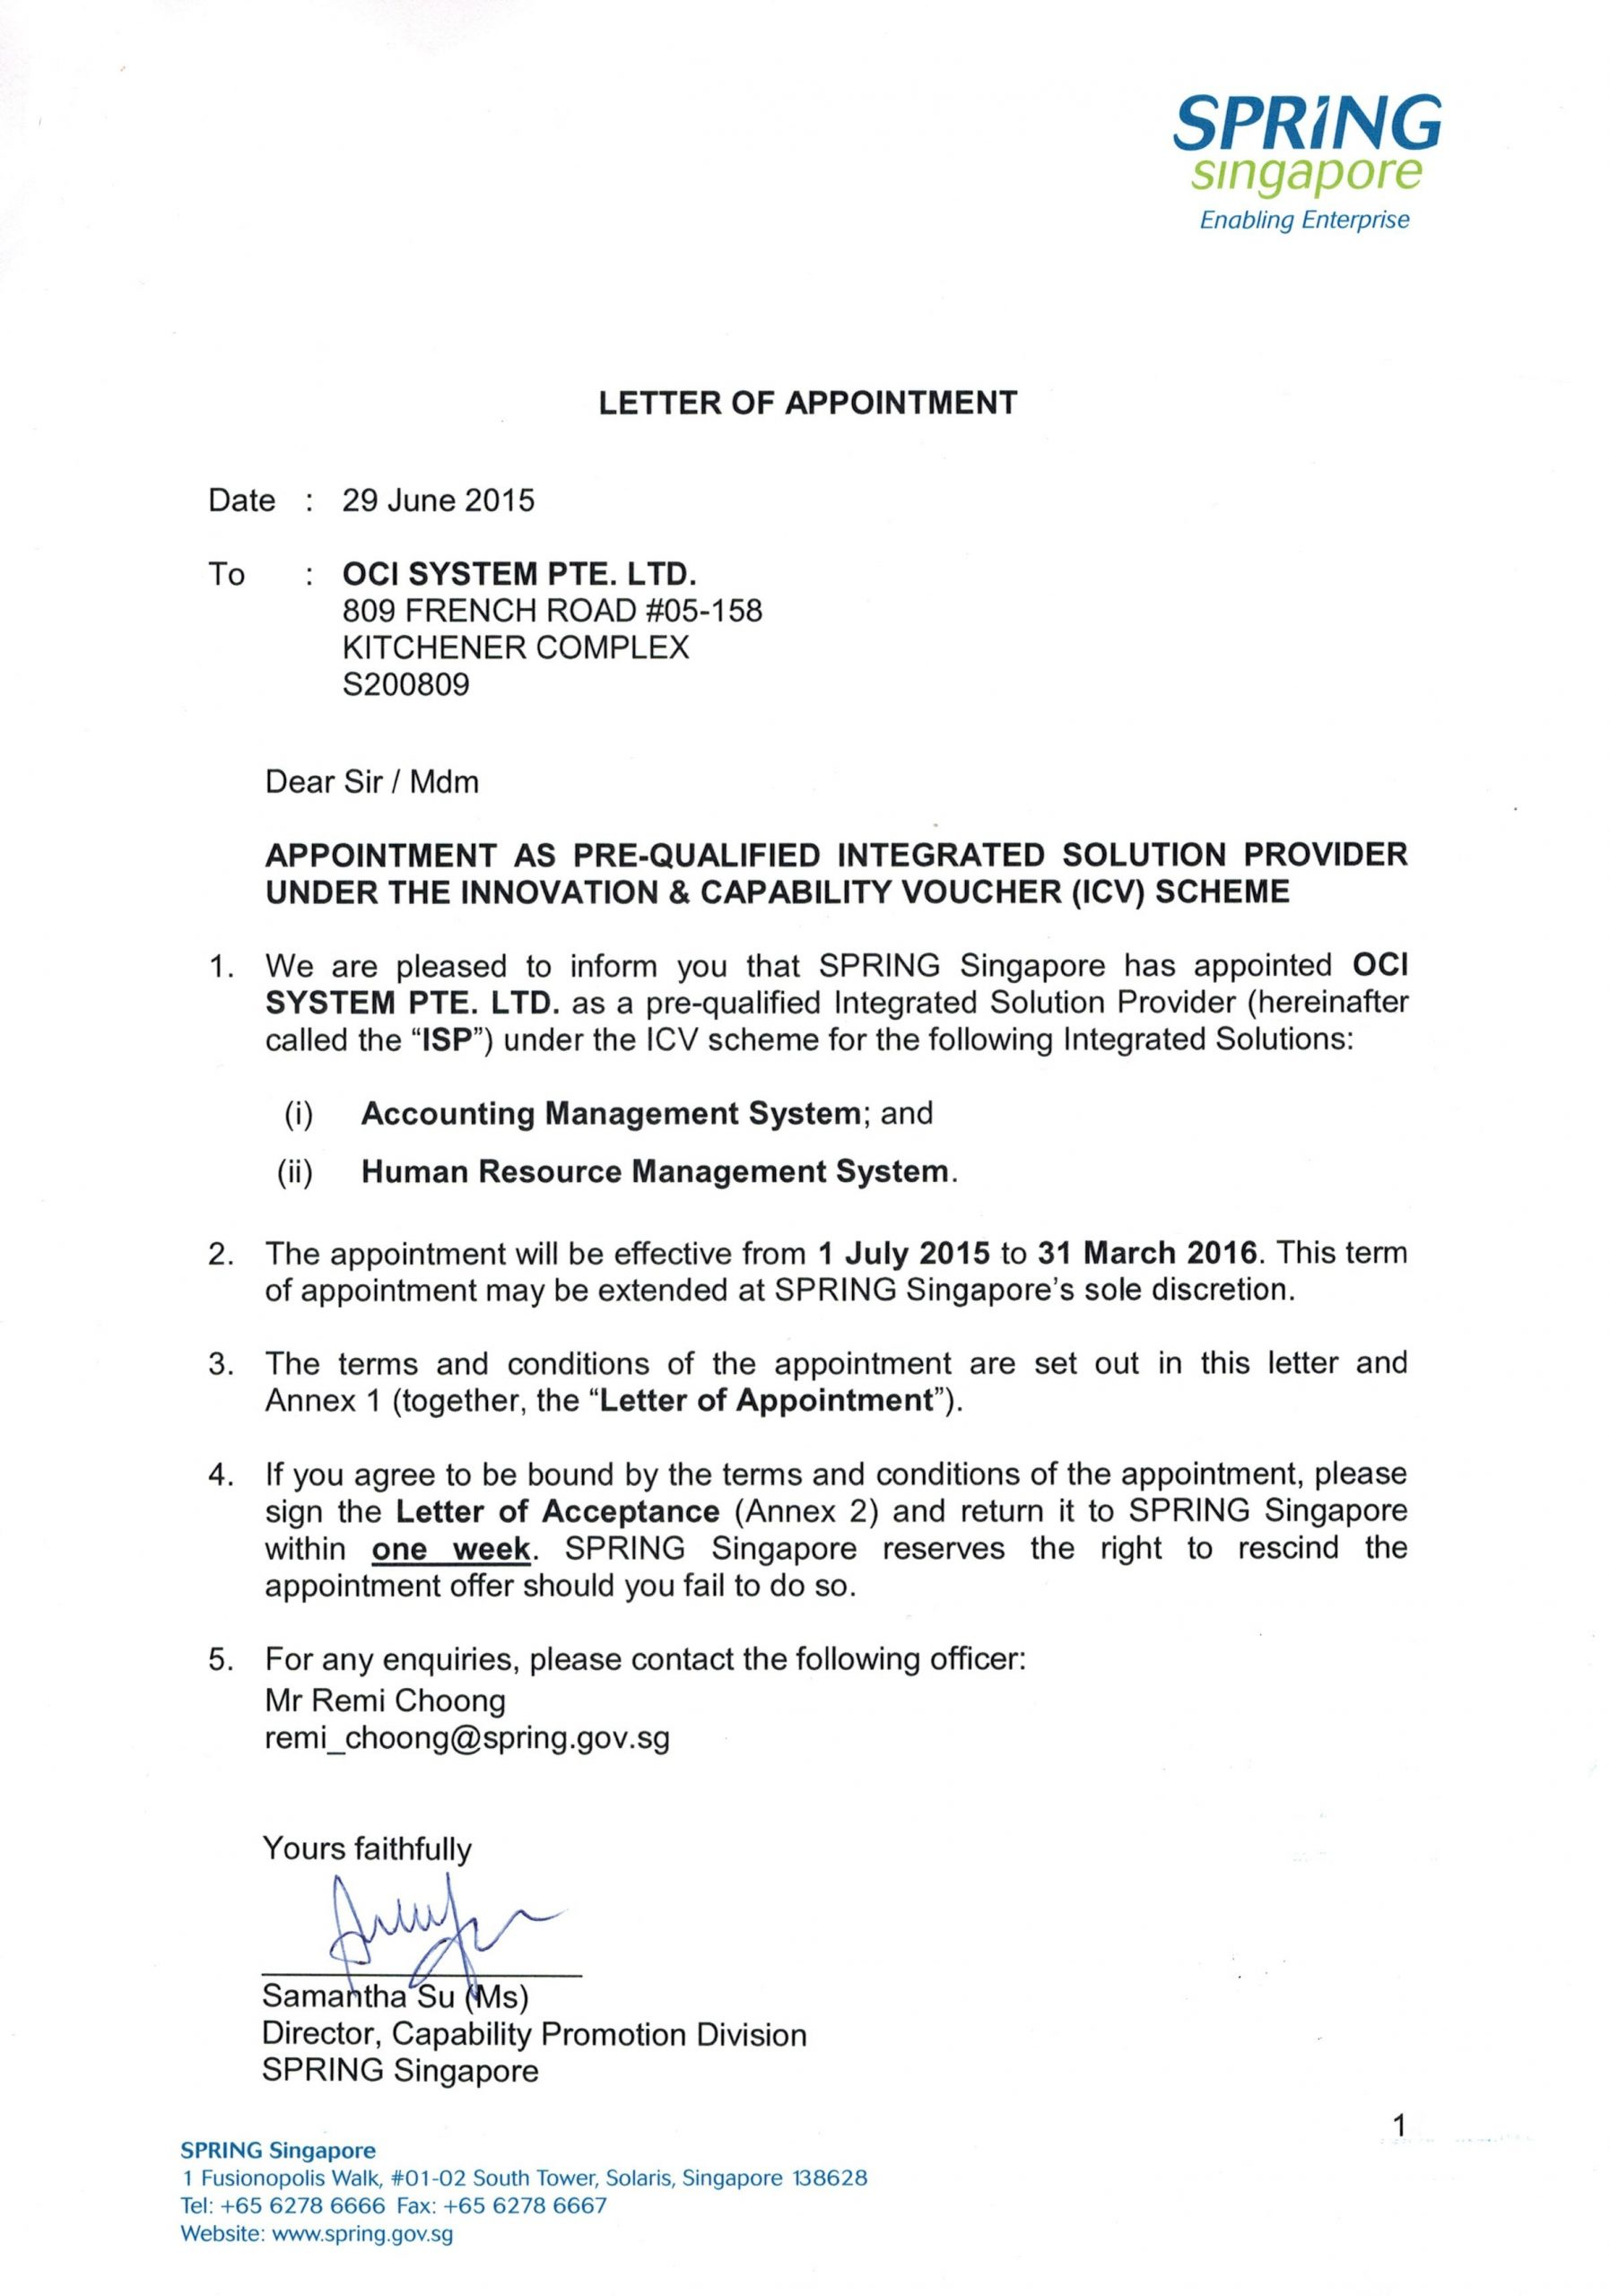 16.1 appointment letter template south africa  16.1 appointment letter template word – DlWord - 16